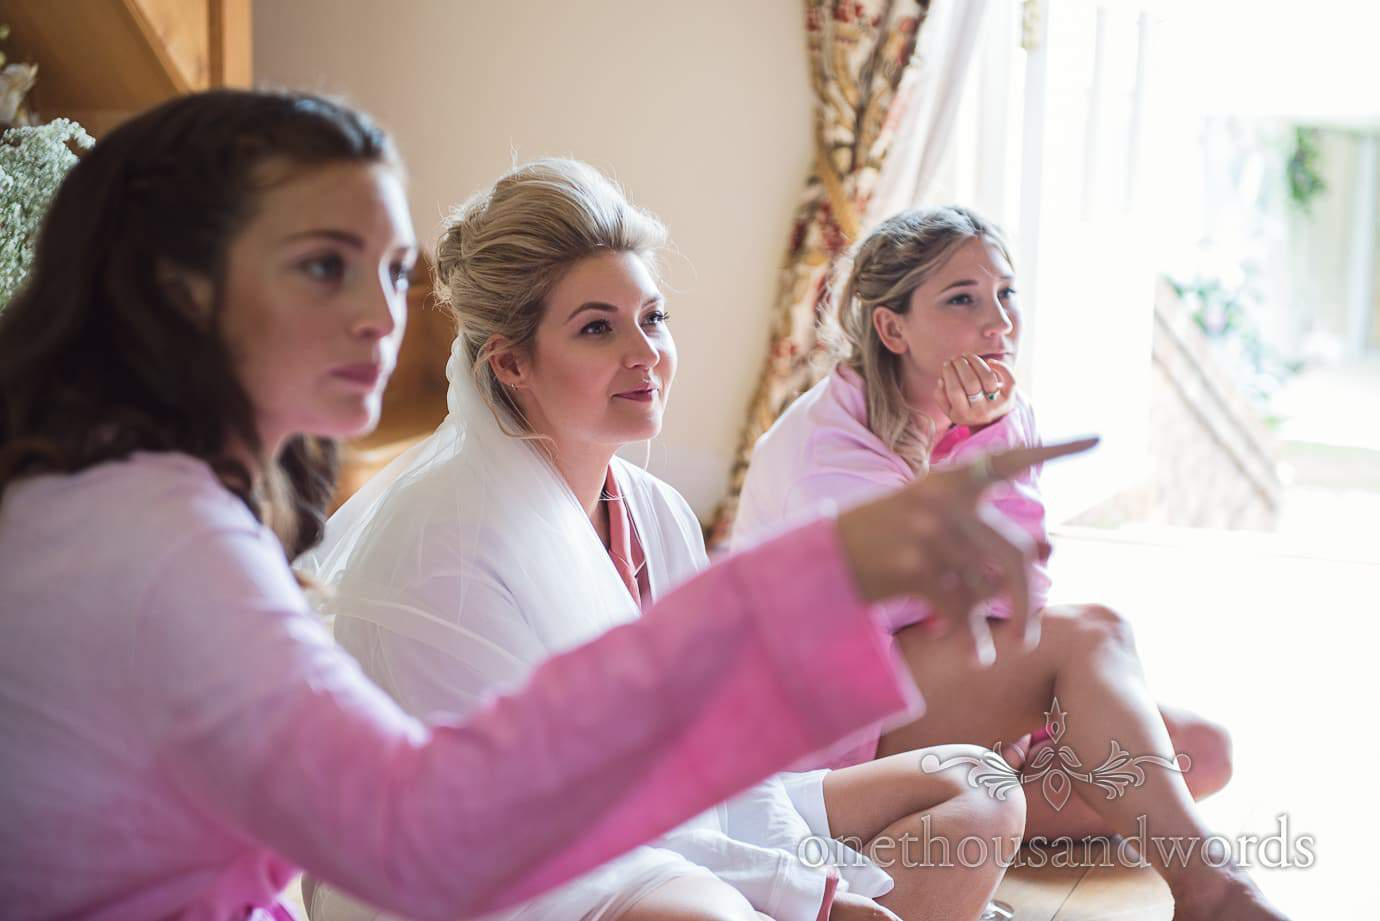 Bride and bridesmaids point to mother of the bride during bridal preparations at home